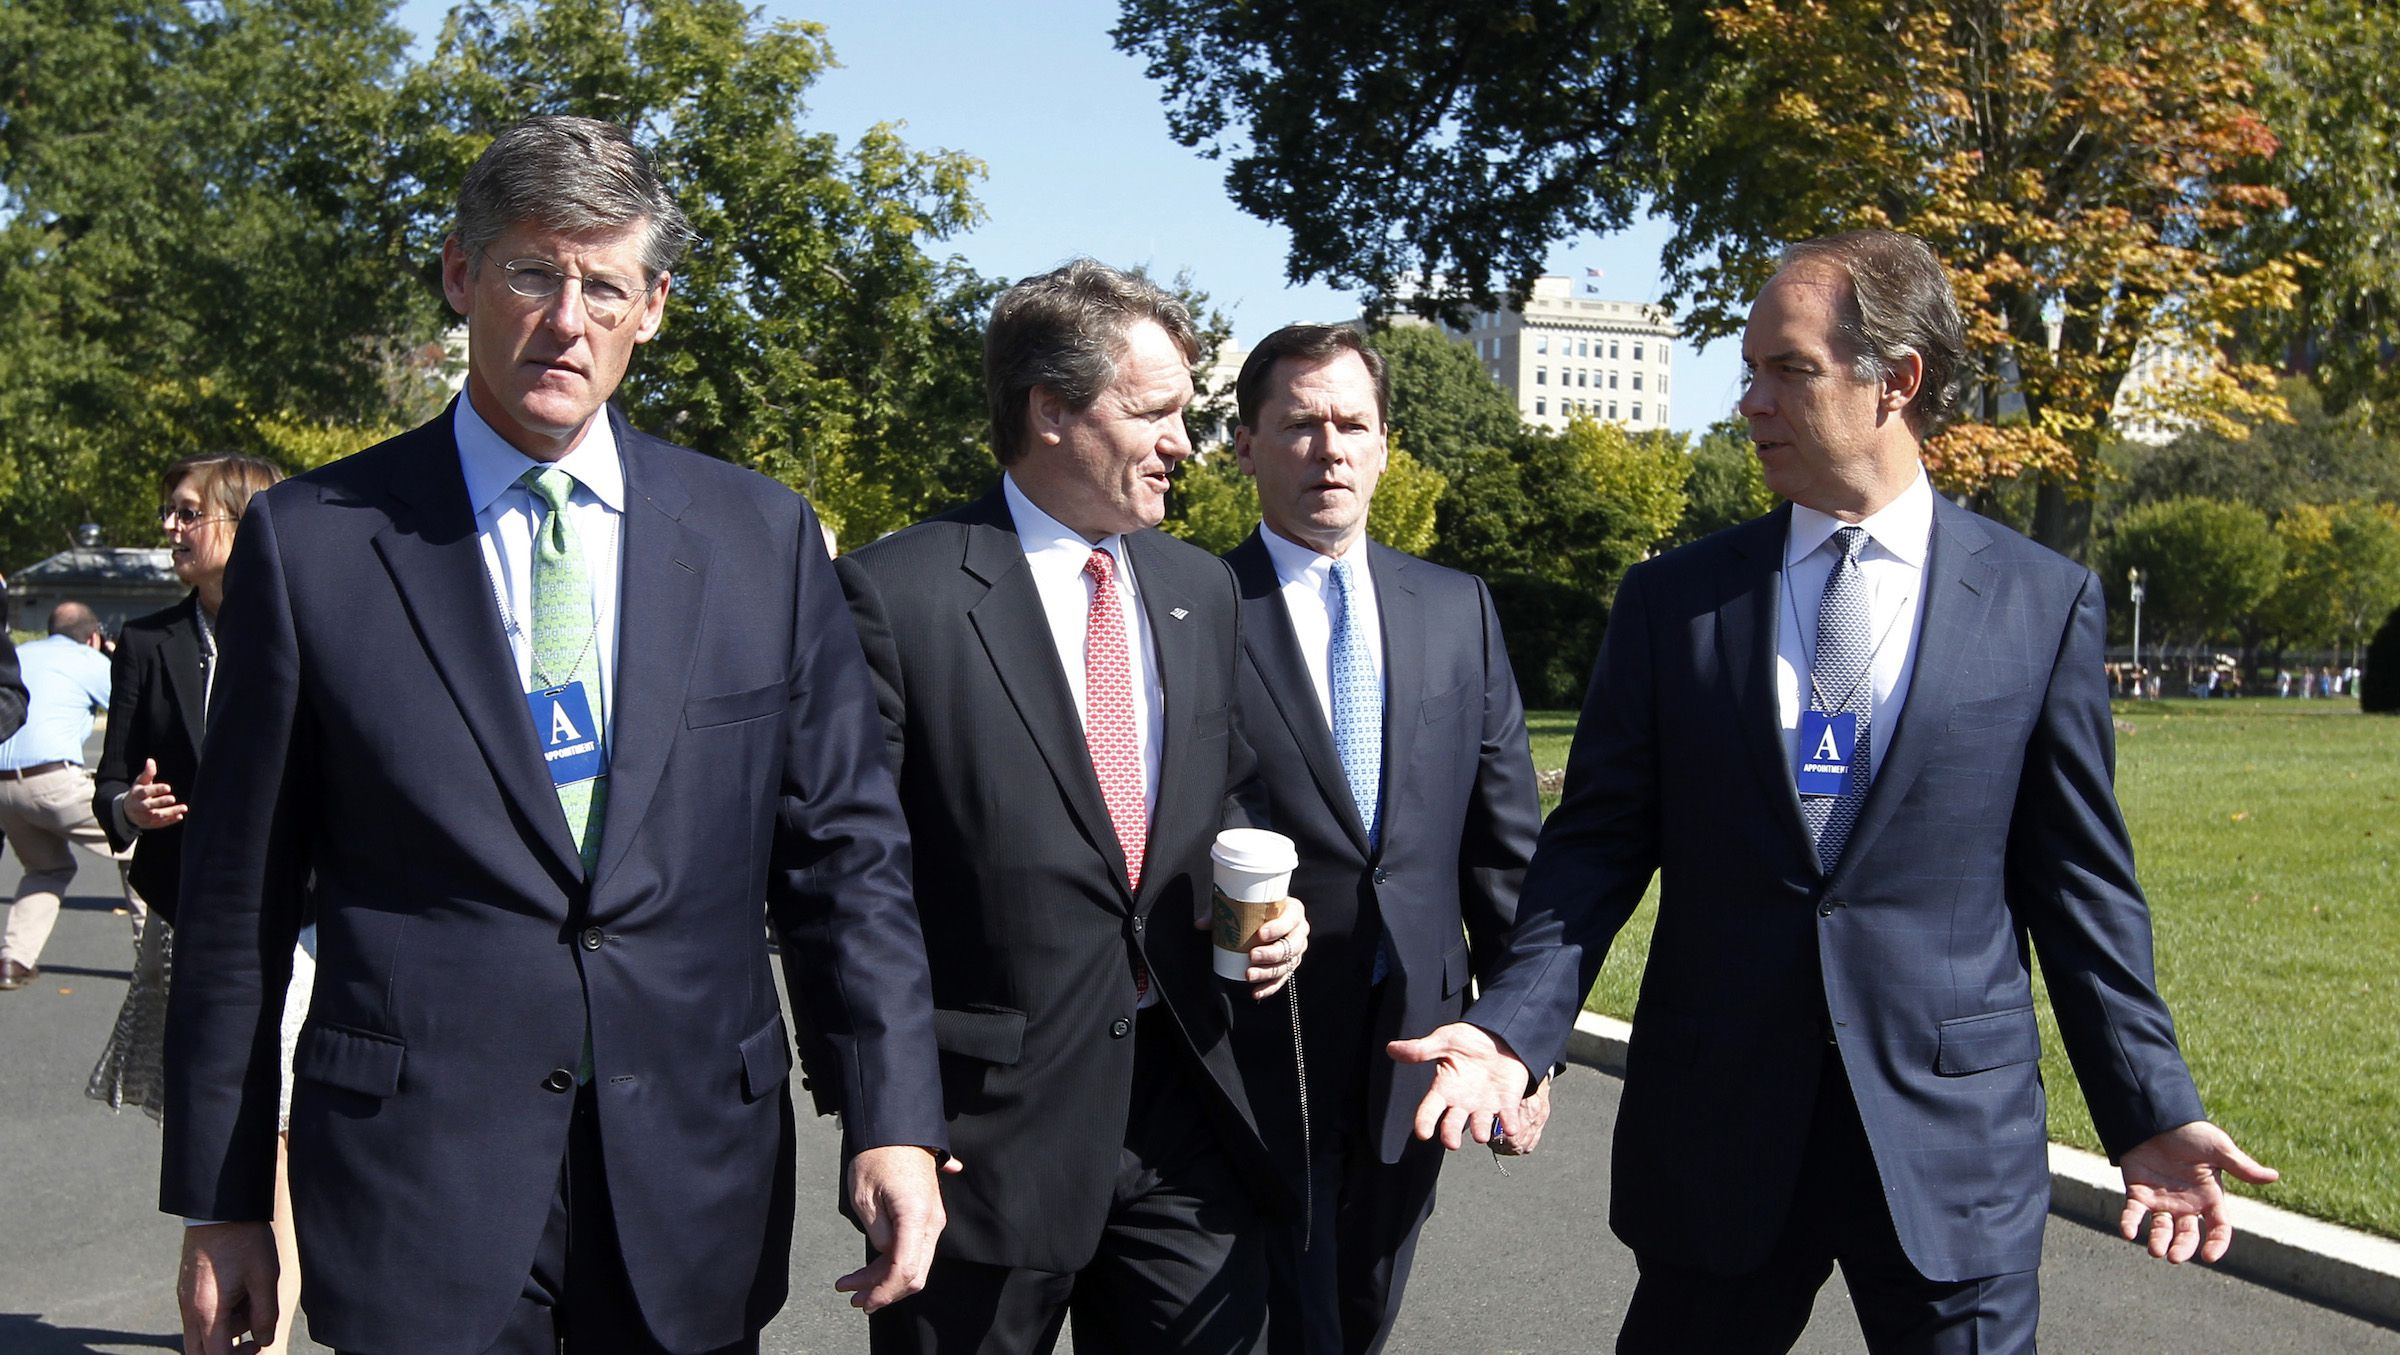 Bank CEOs arrive at the White House in Washington